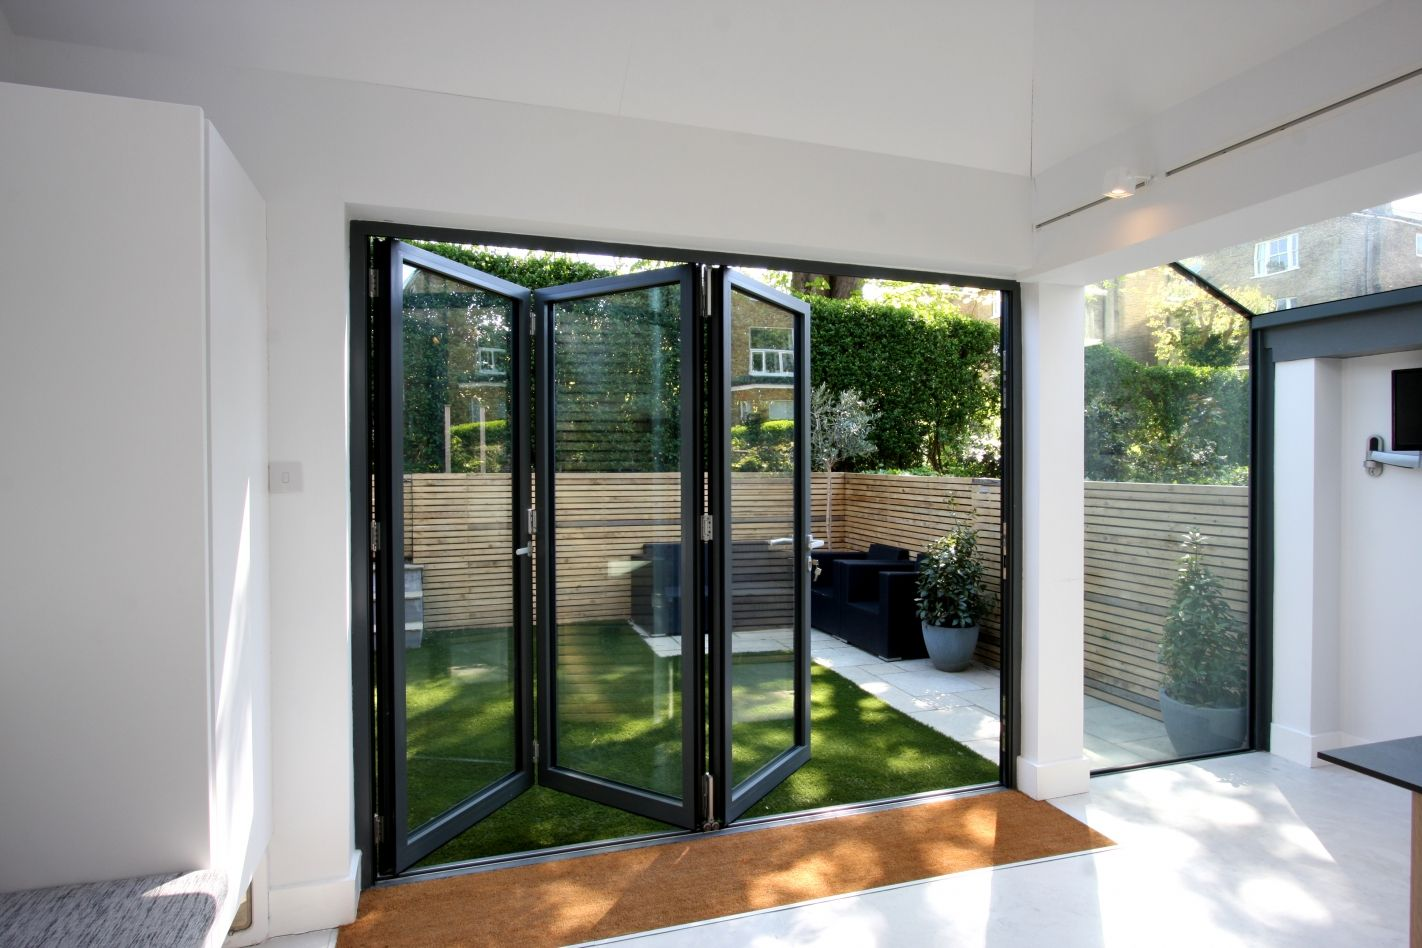 Aluminium Bi Fold Doors To Modern Rear Extension In London Project